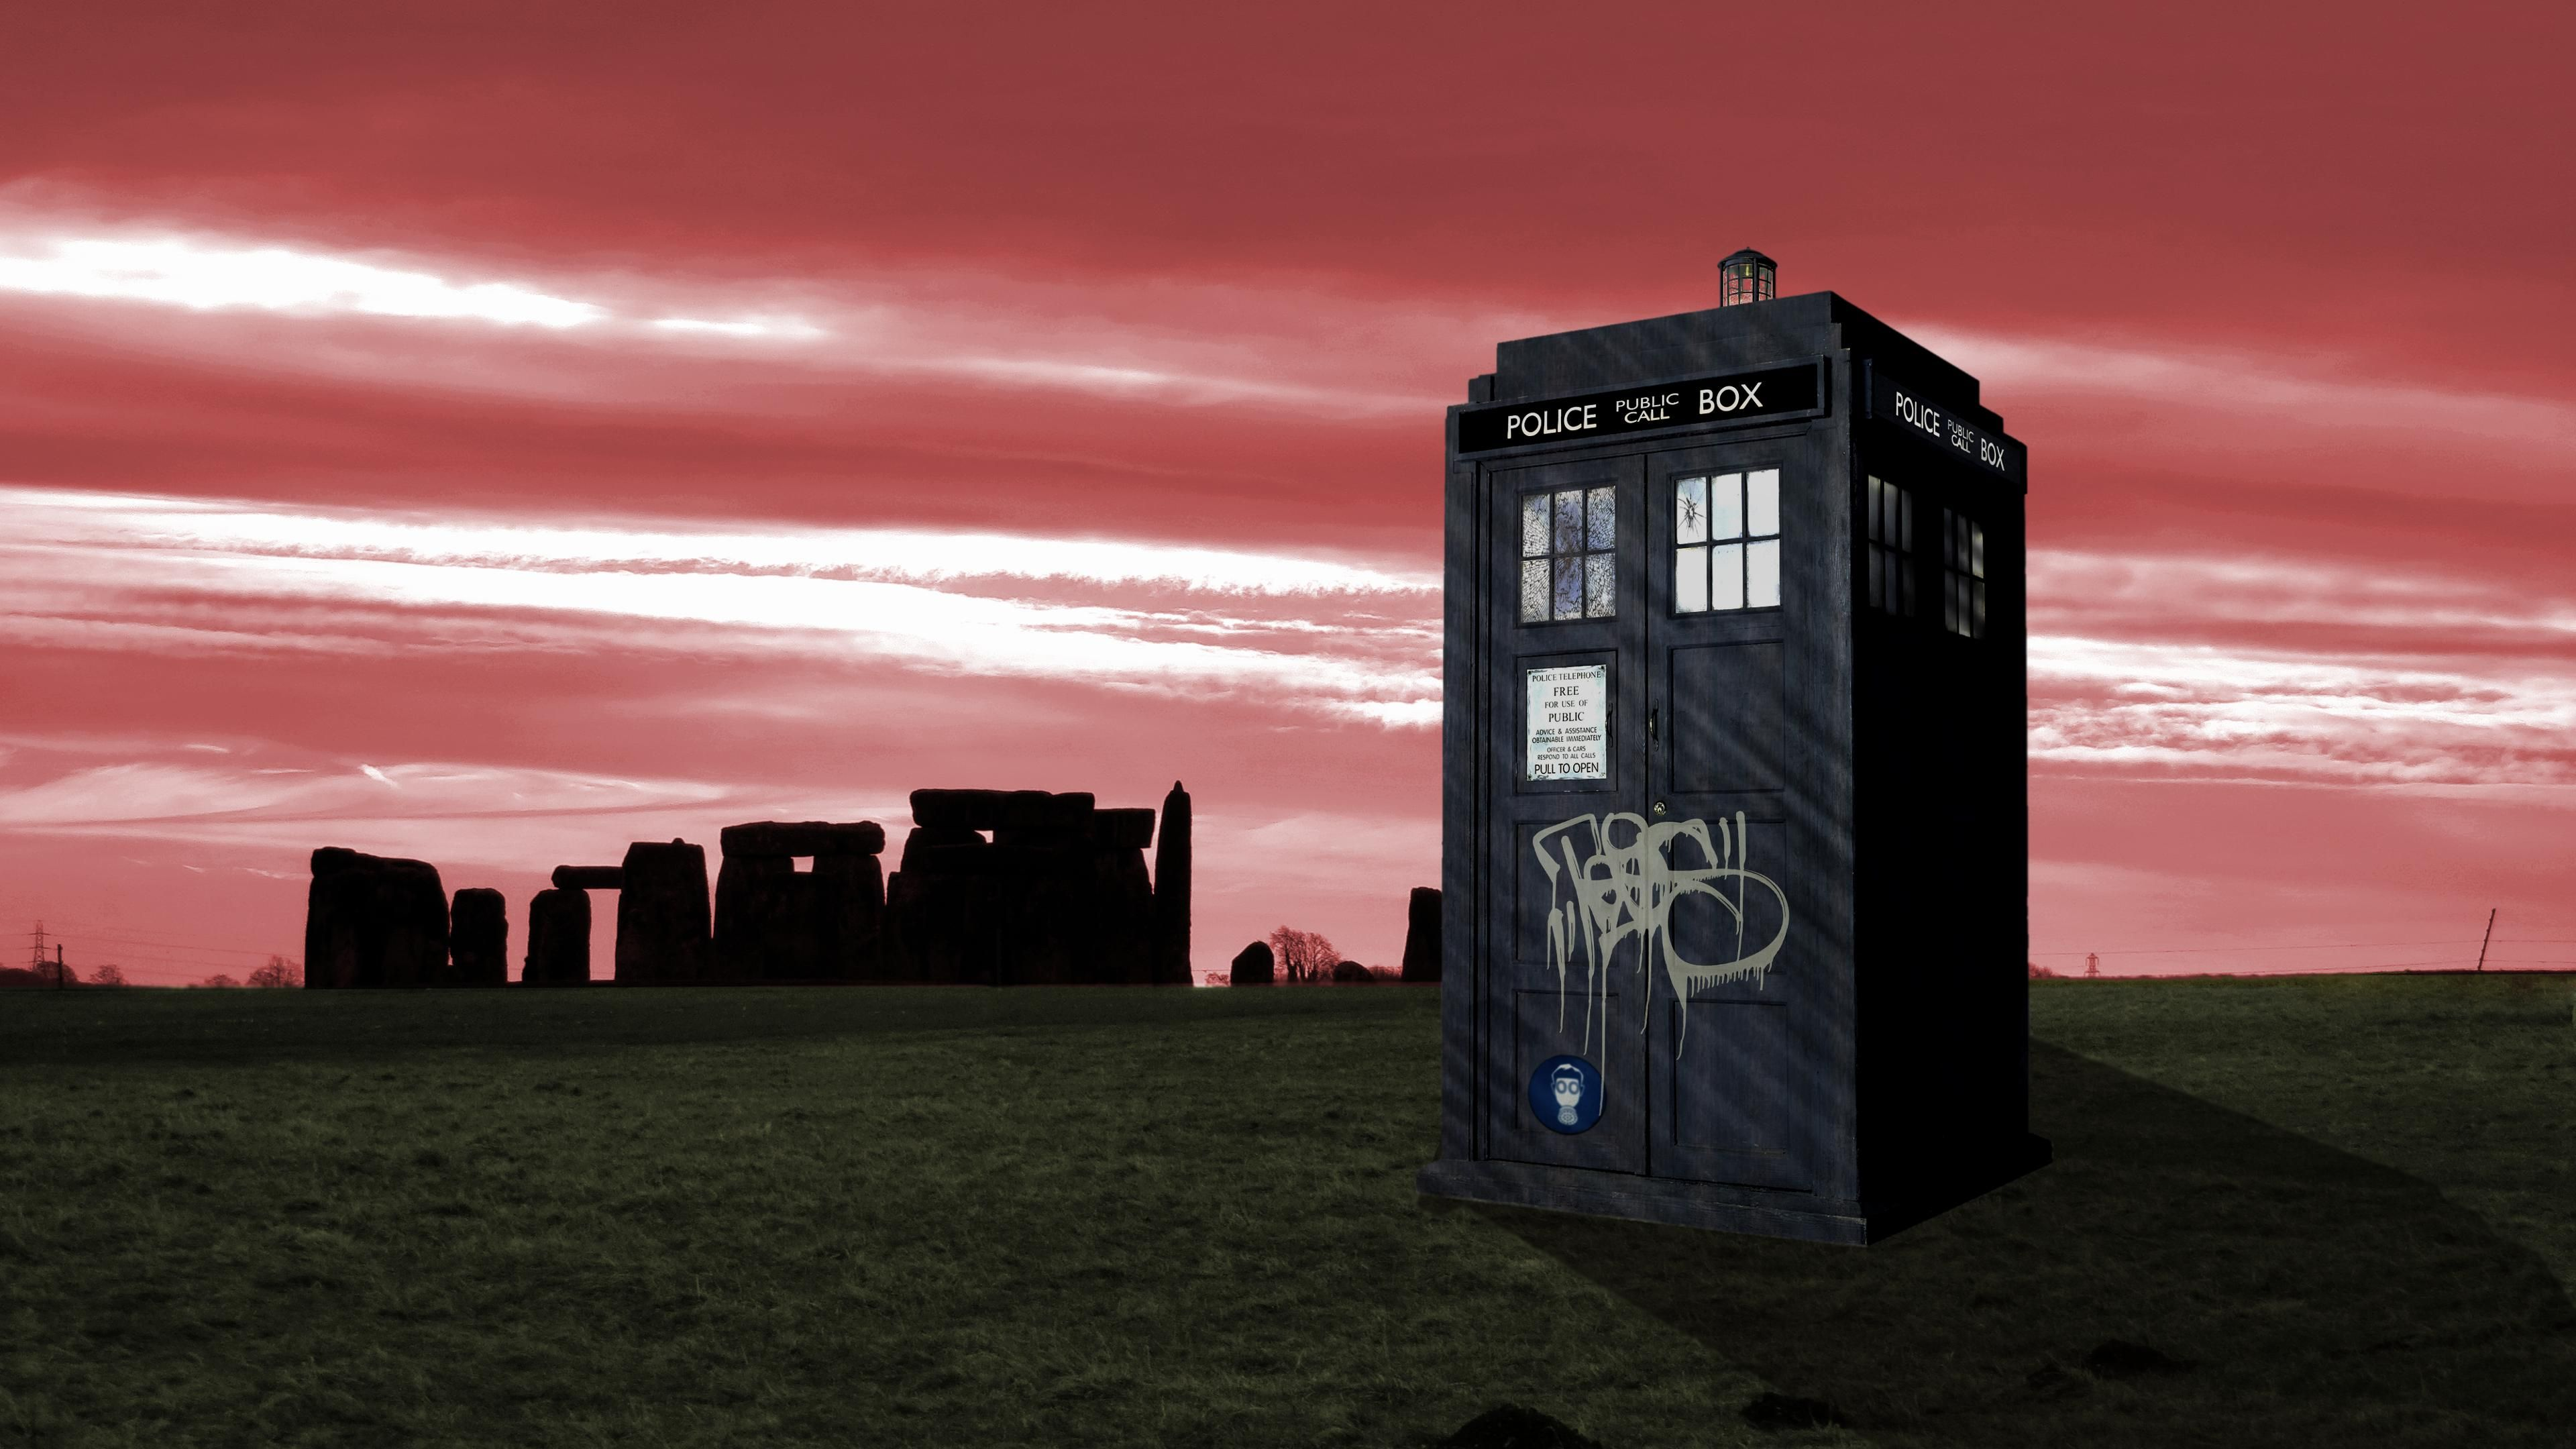 [4K] Doctor Who wallpaper I made a few years back. Touched